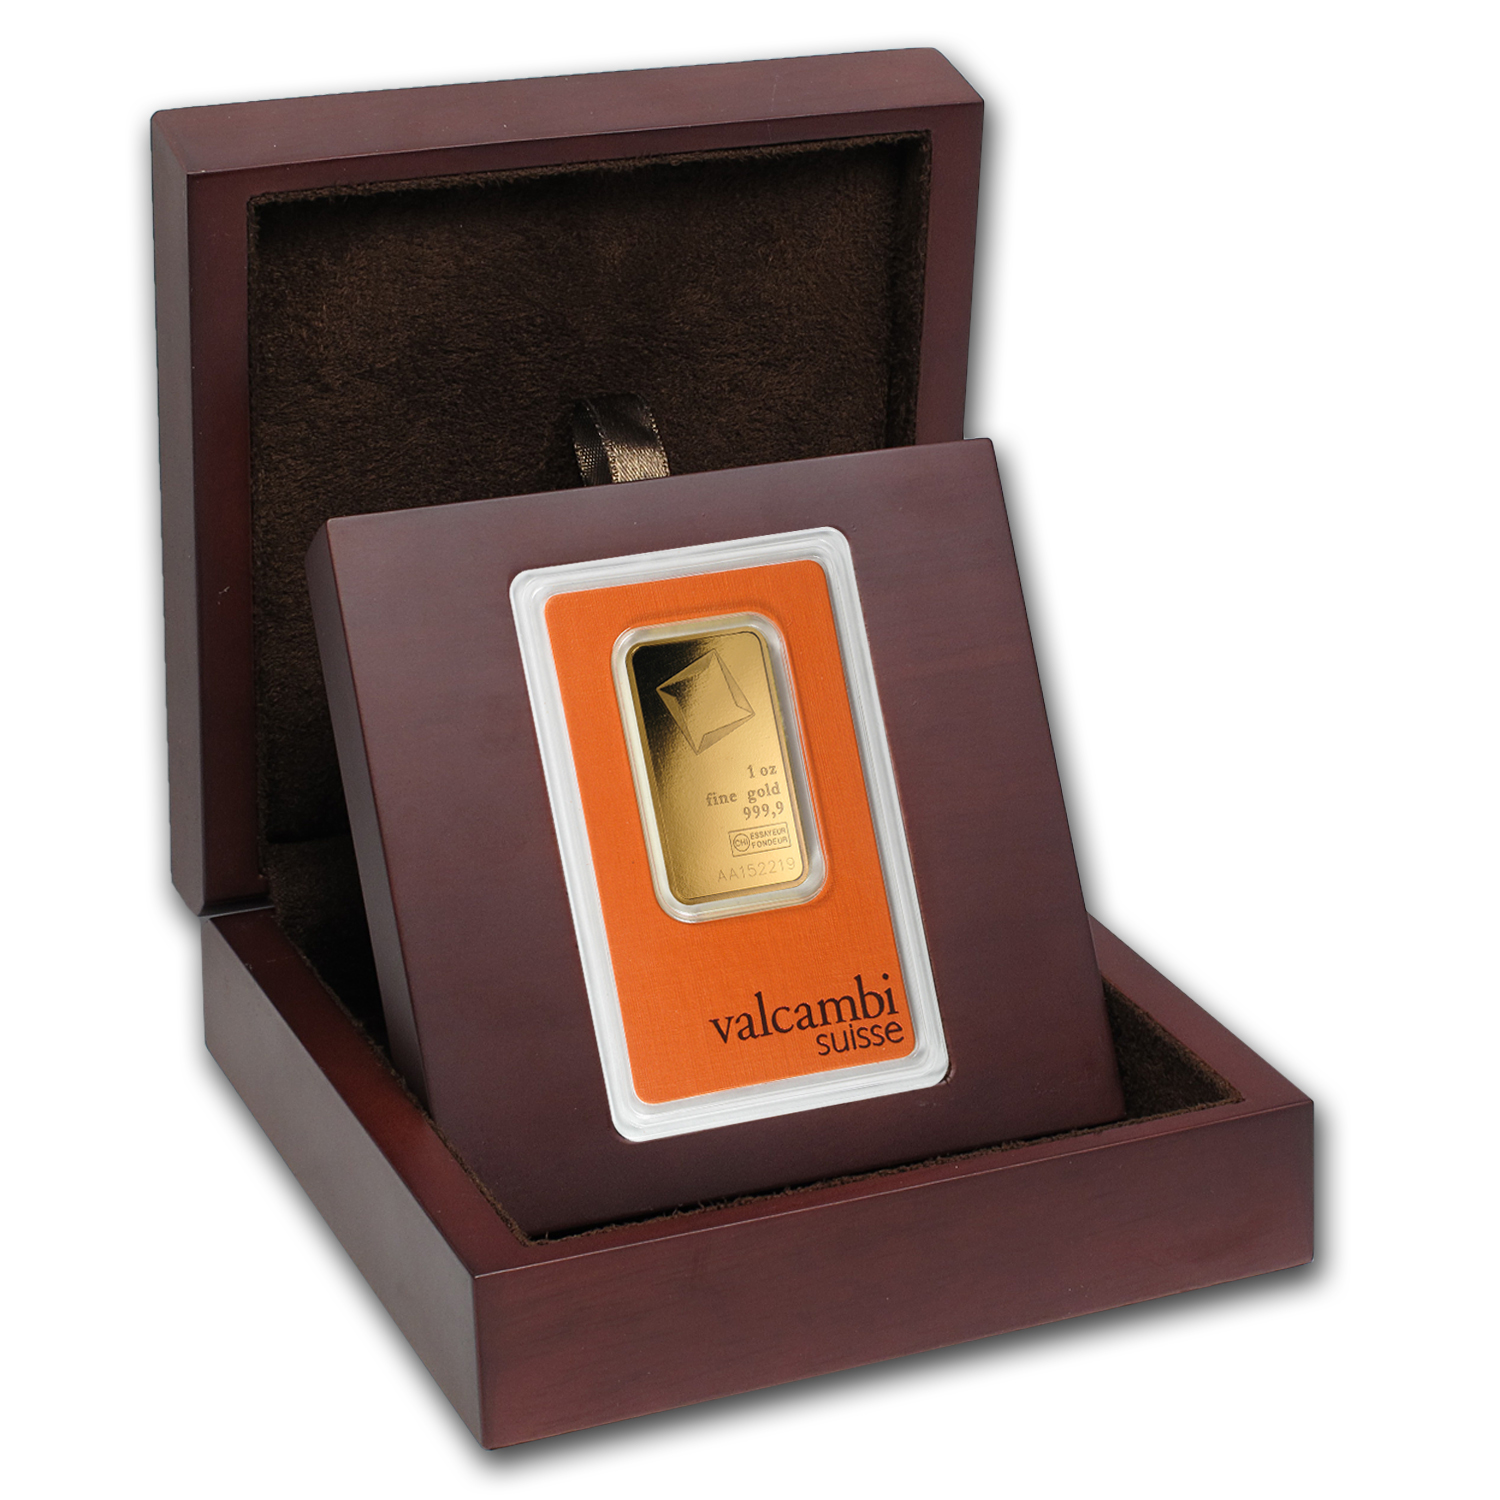 APMEX Wood Gift Box - Valcambi Gold Bar (w/Assay)